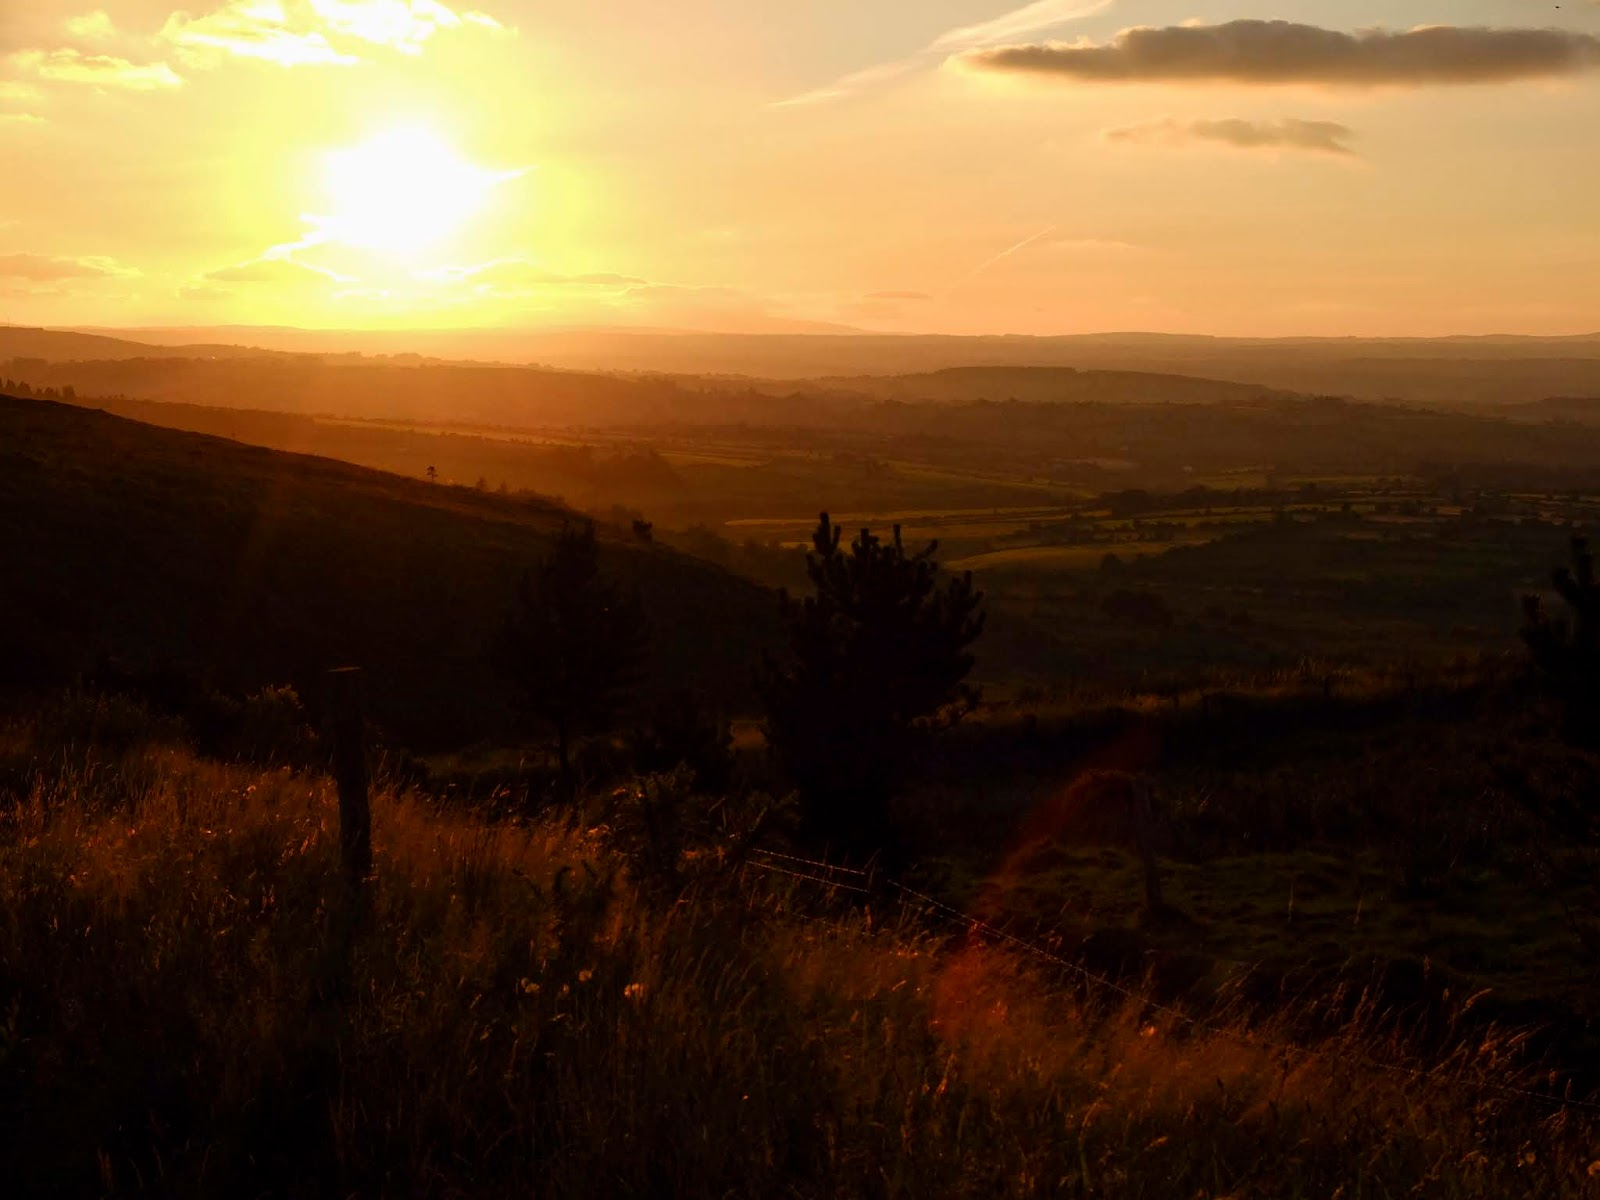 Sunset in the valley in Boggeragh Mountains in County Cork.